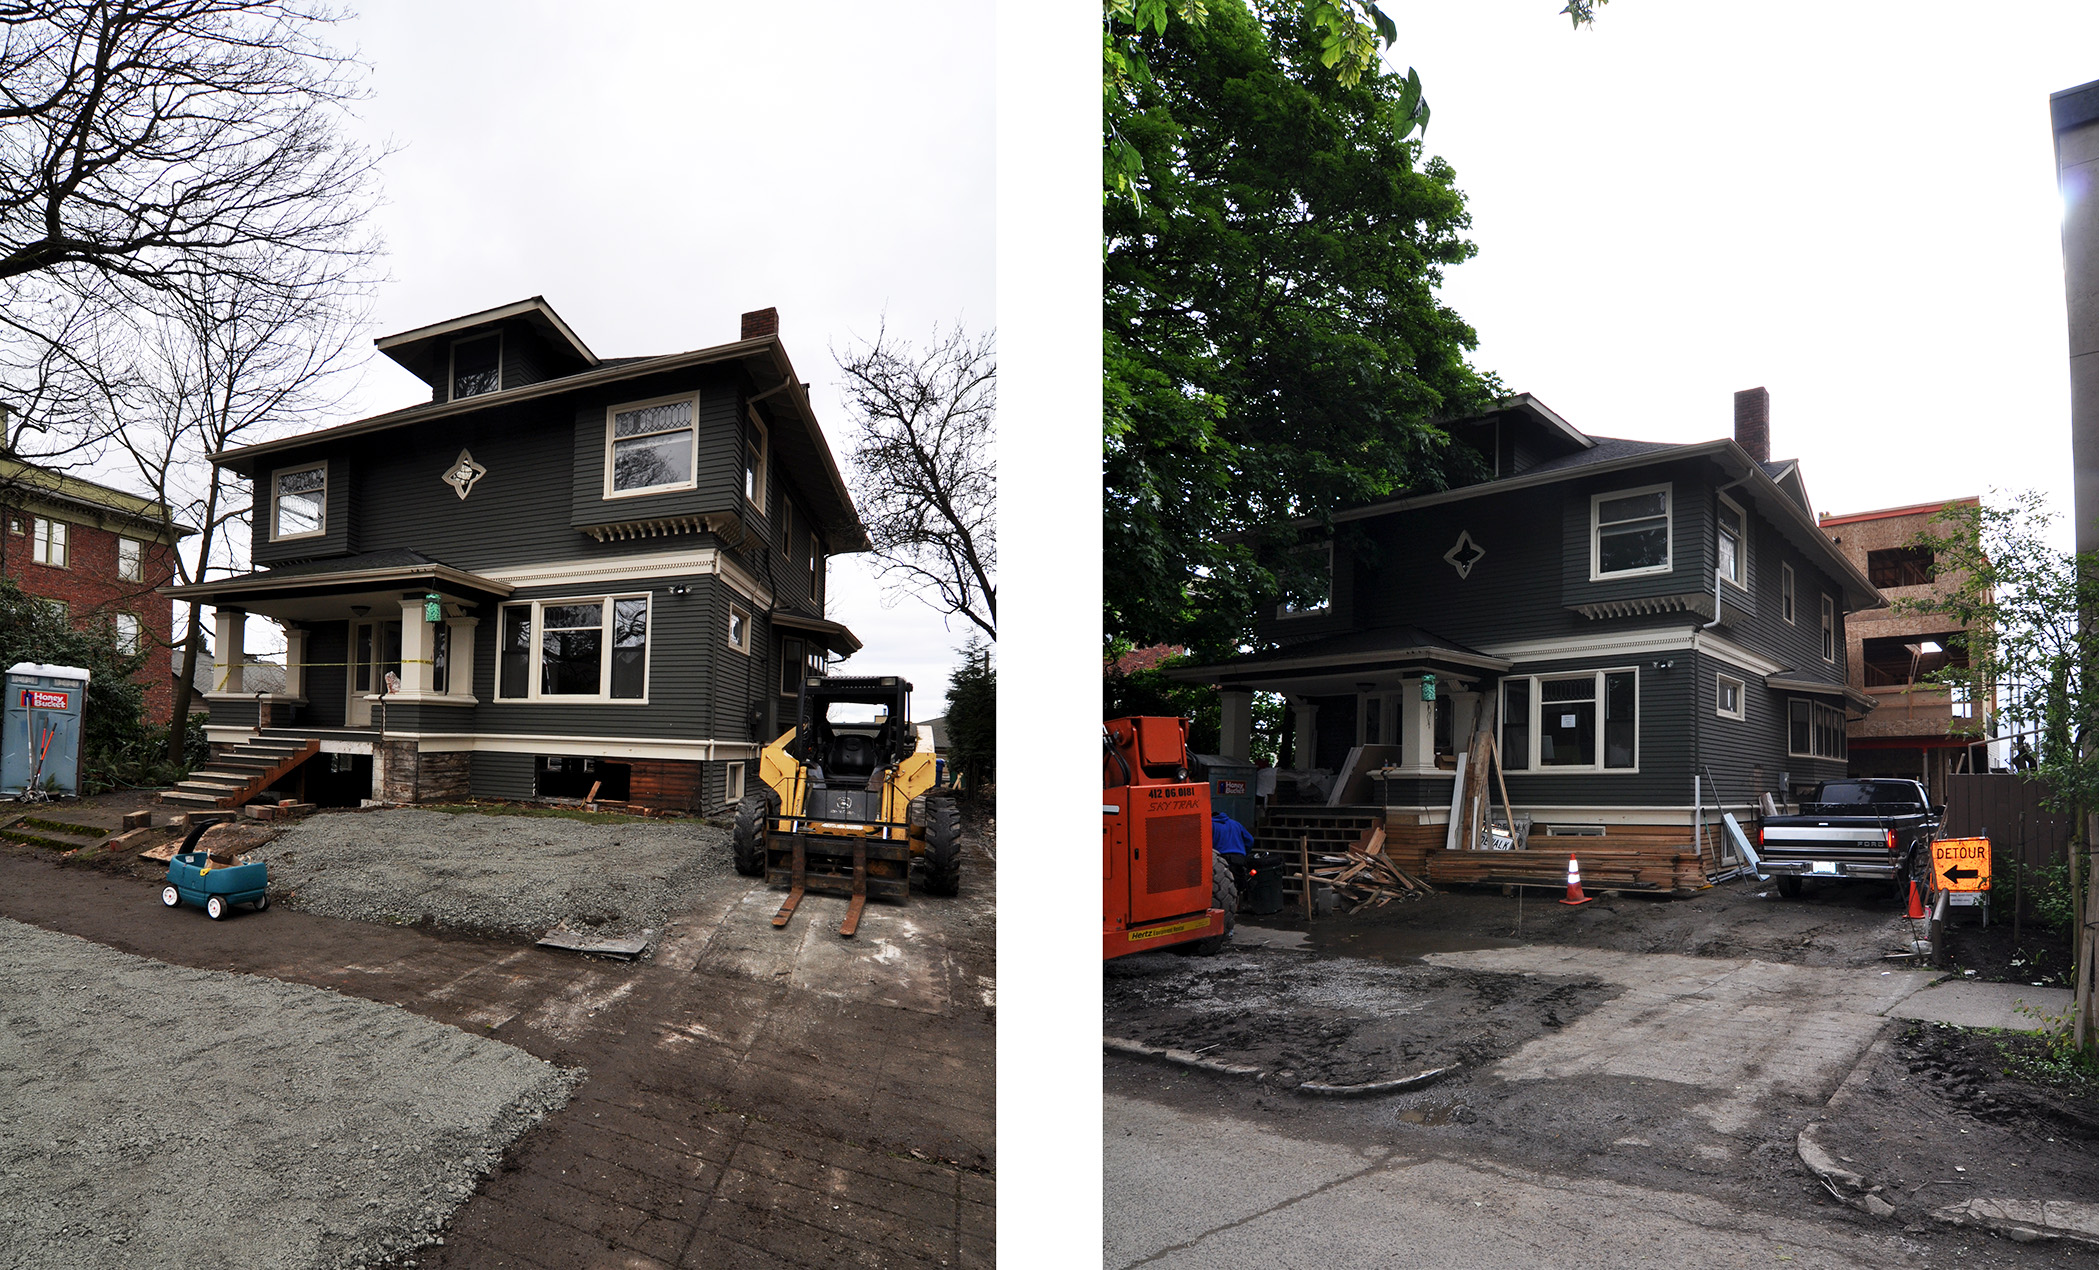 The moment of truth: a forklift pulls the entire house closer to the sidewalk.